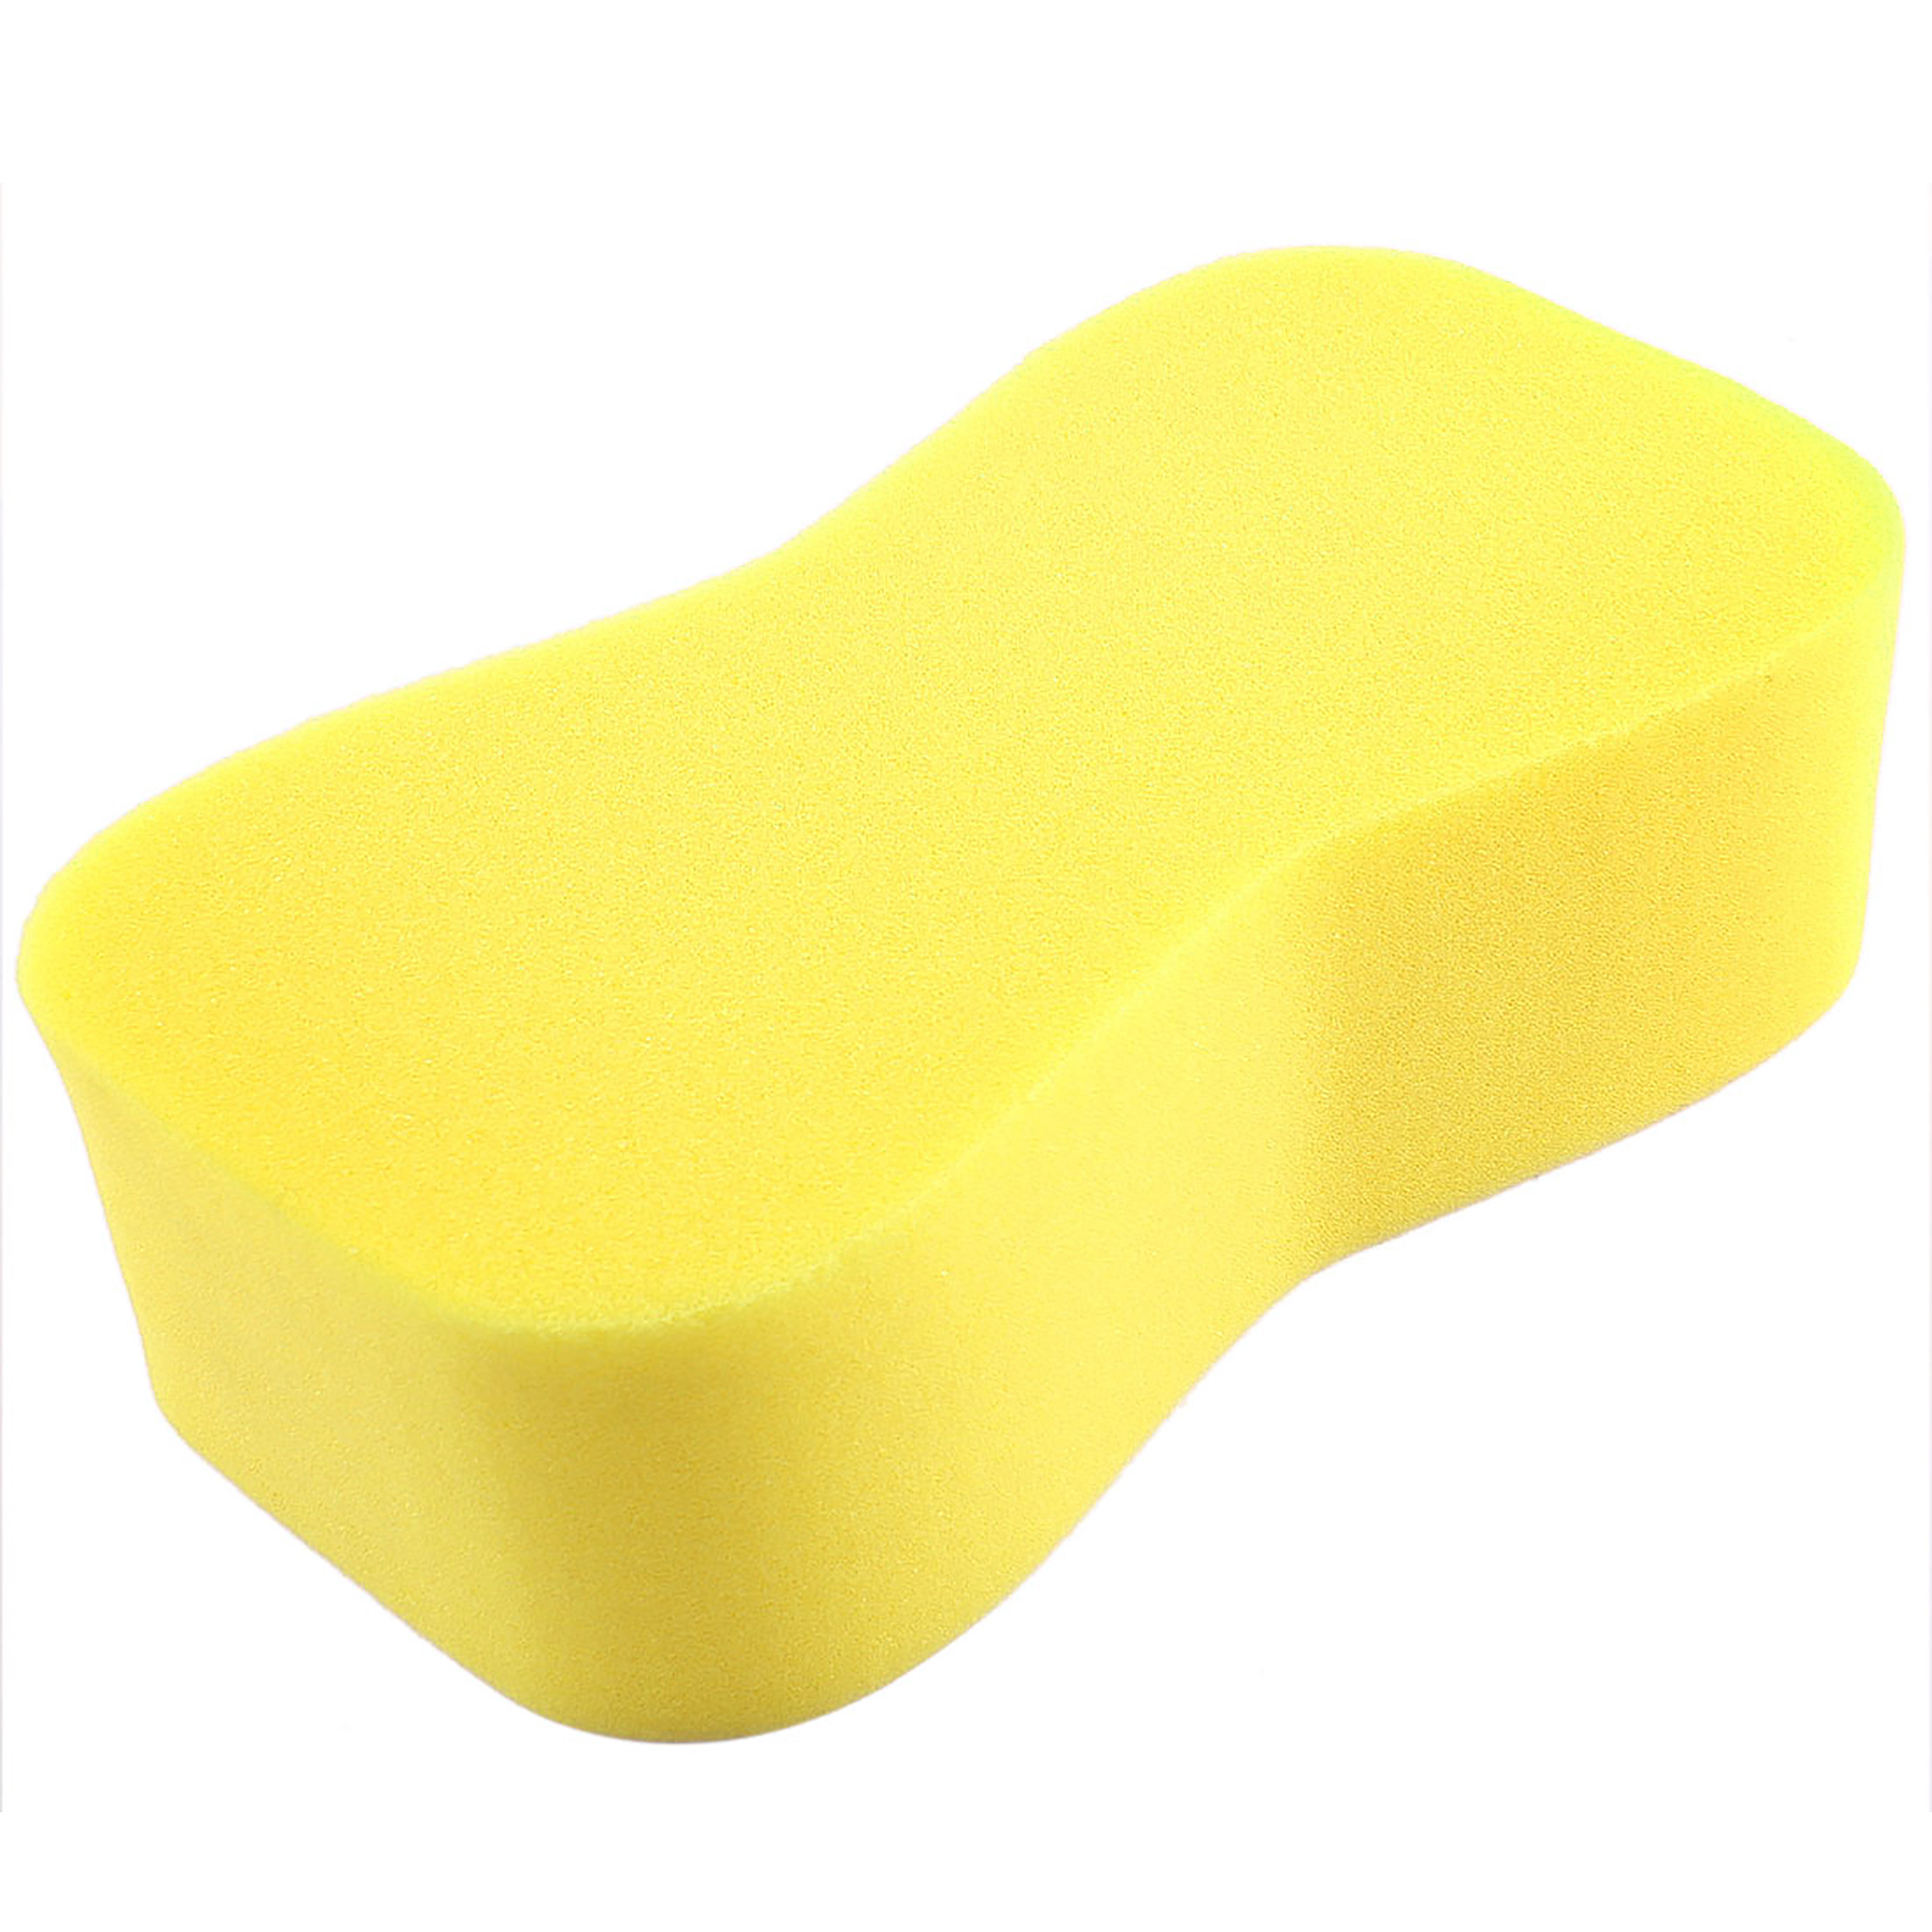 Yellow 8 Shape Cleaner Tool Car Automobile Washing Sponge Pad